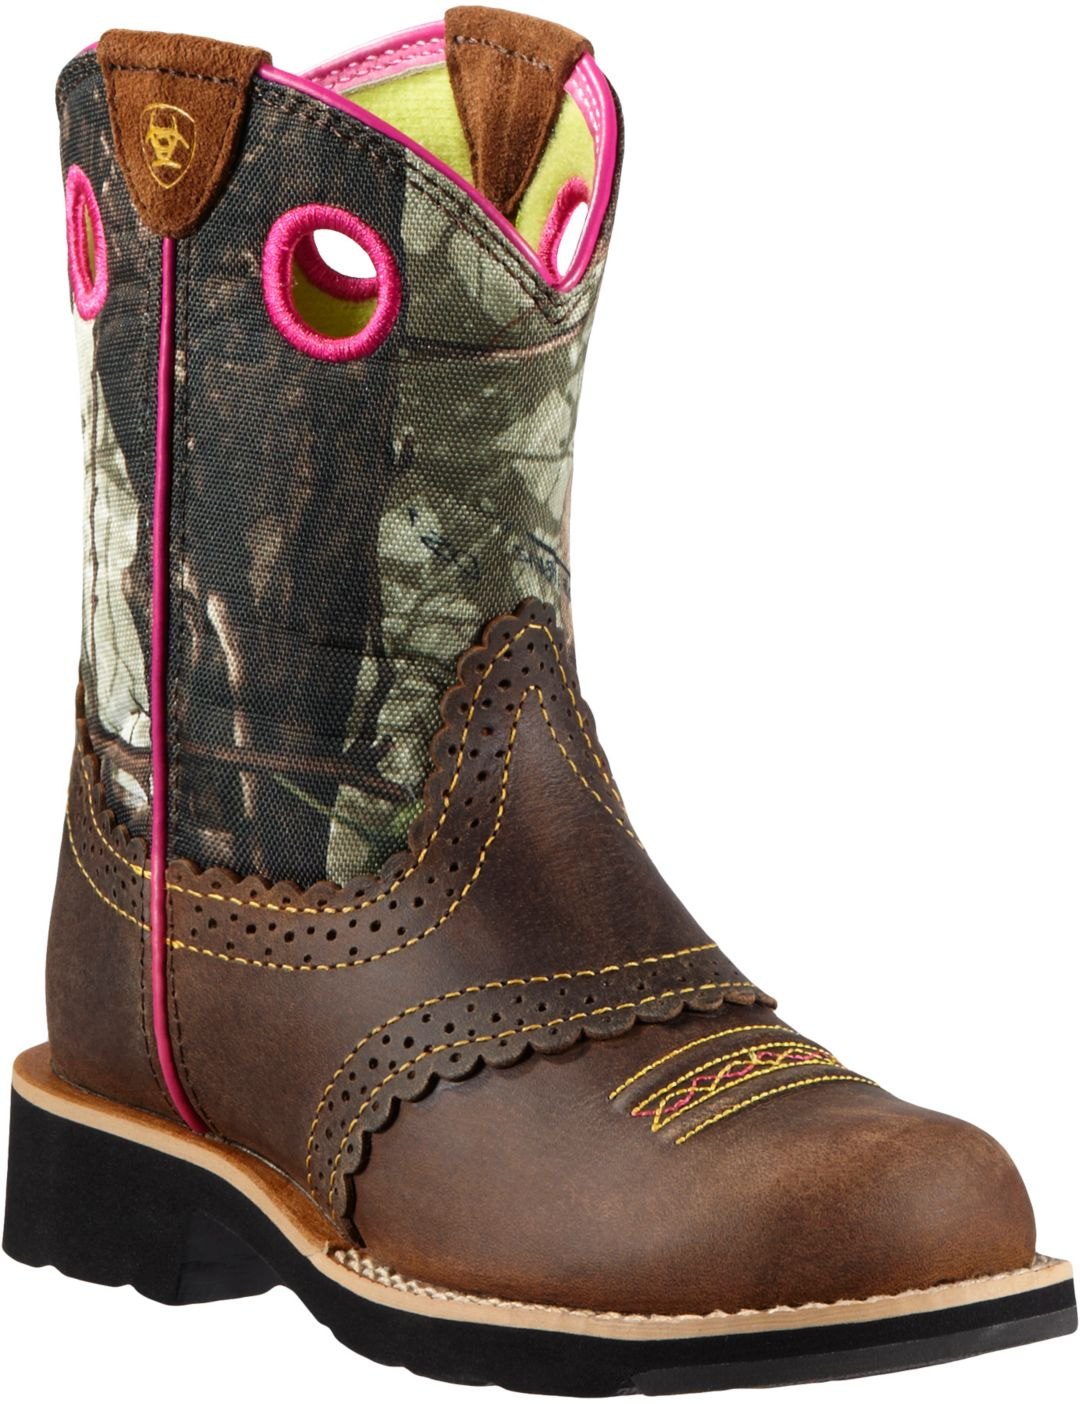 4e8c421eb654a Ariat Girls' Fatbaby Cowgirl Camo Western Boots